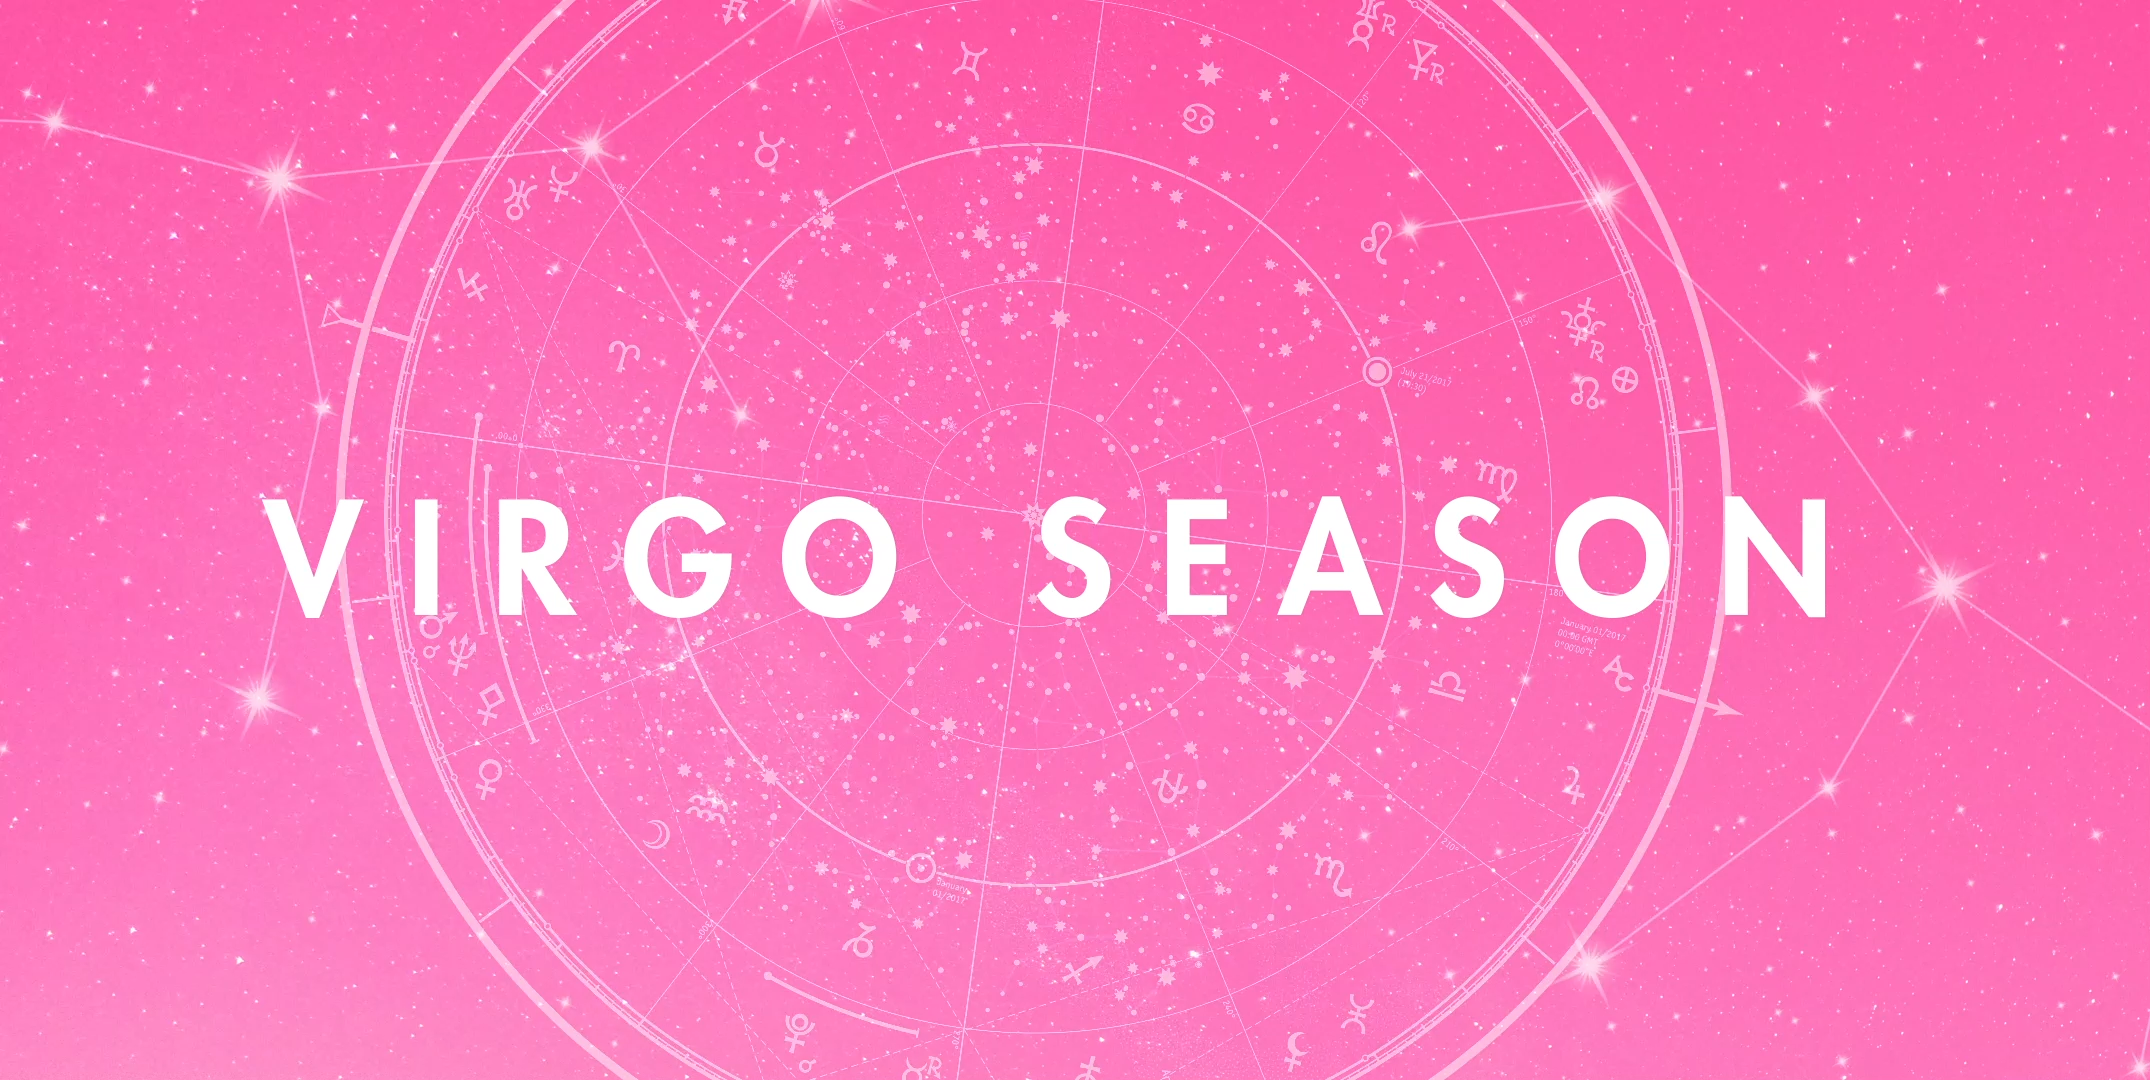 Virgo Season 2019 - What You Need to Know About Virgo Season